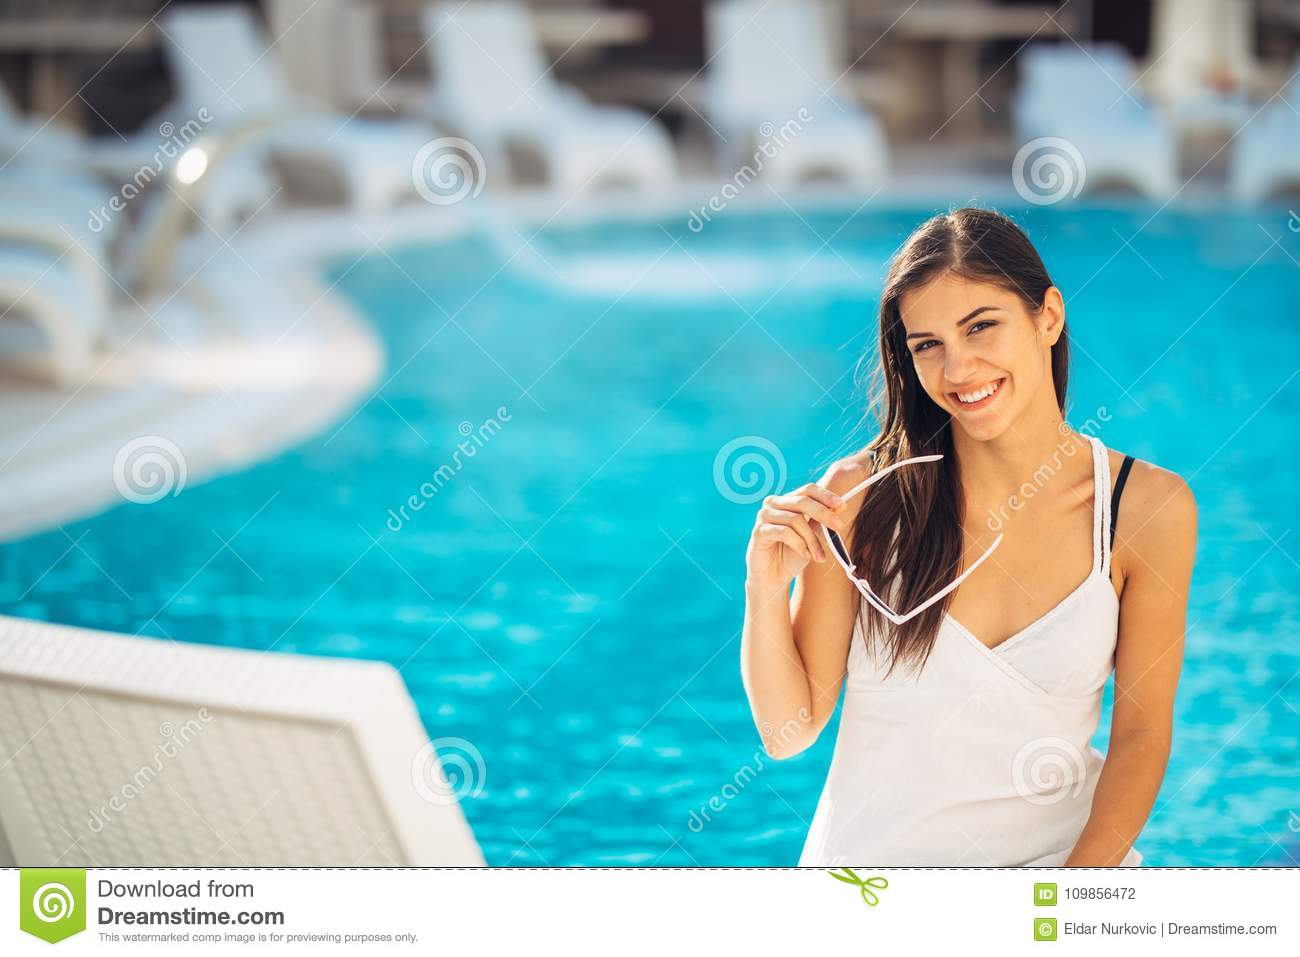 Attractive young woman relaxing at nluxury vacation resort pool.Enjoying summer.Vacation mood.Girl at travel spa resort pool.Flirt